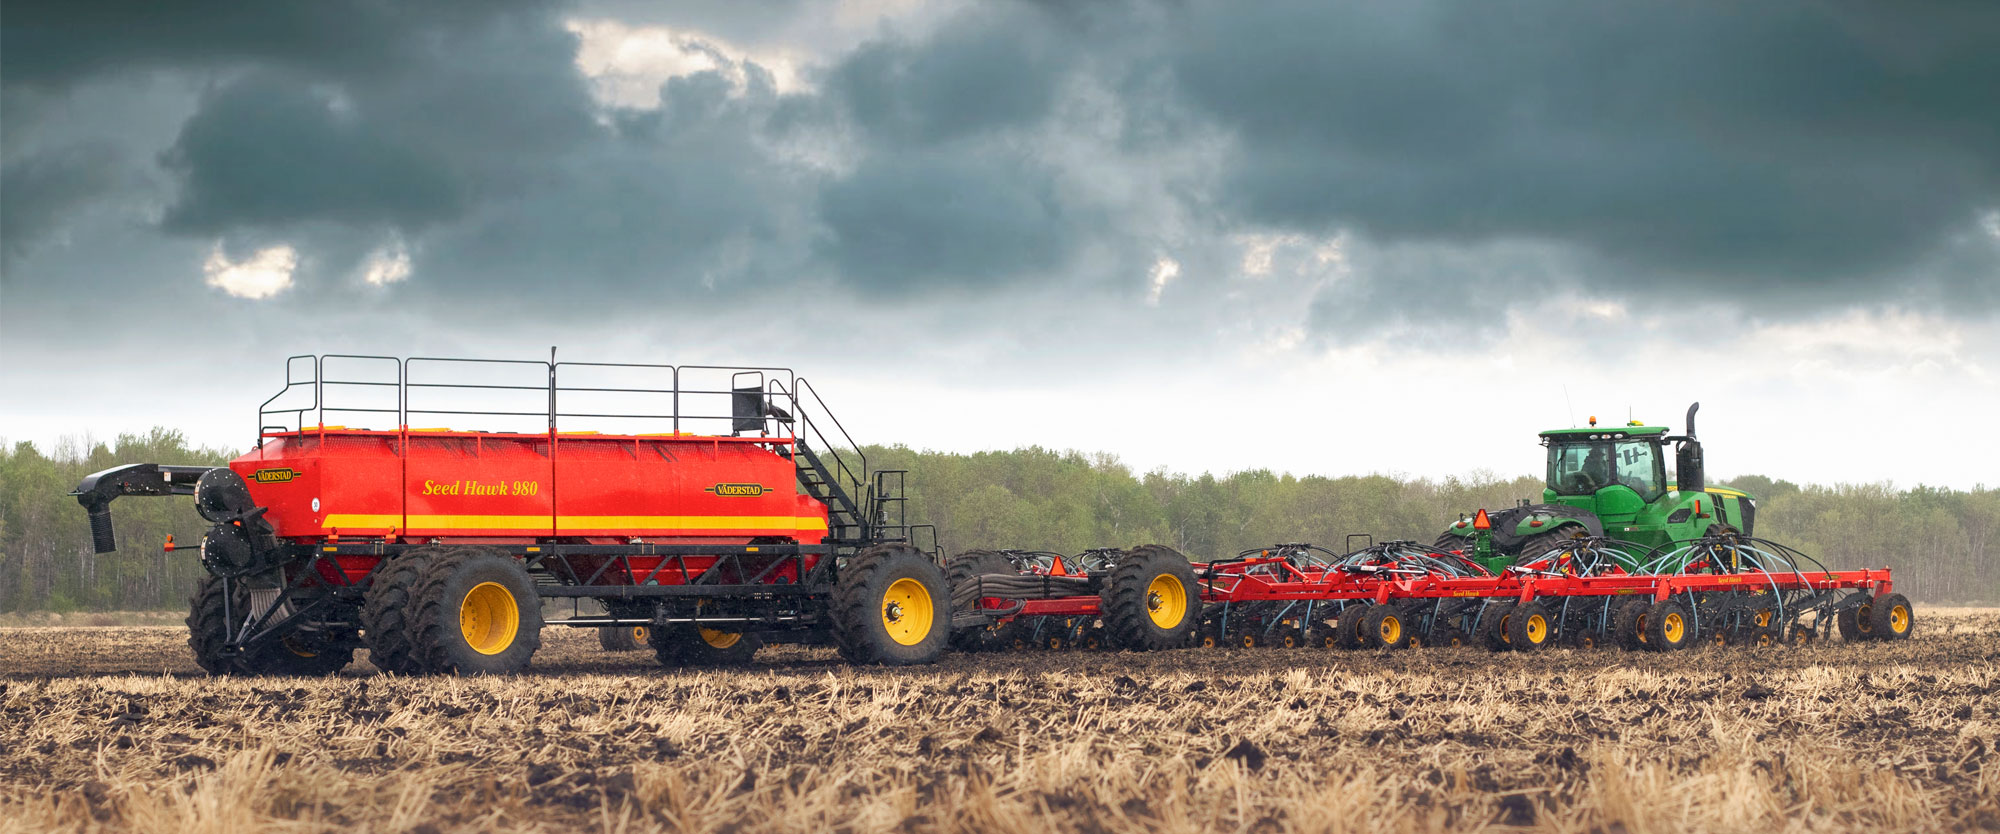 Seed Hawk Air Drills Precision Seeding Powerful Crops